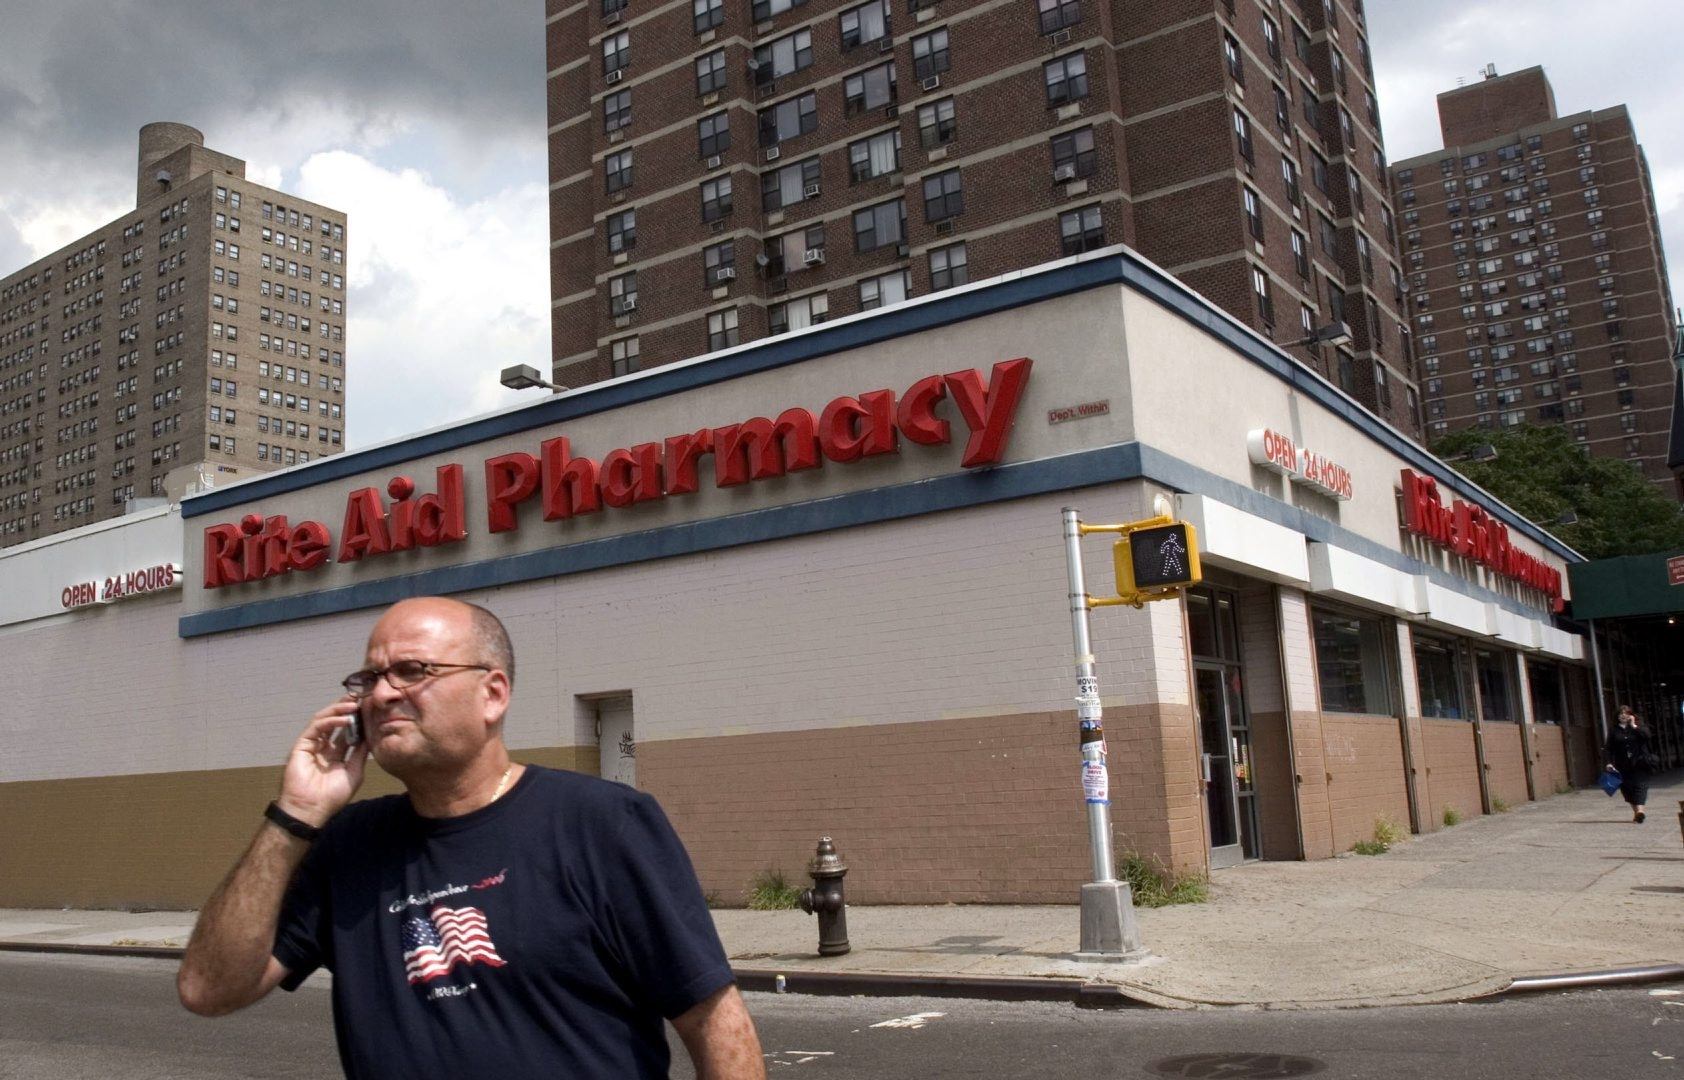 Rite Aid drugstore chain, including this location in Manhattan, has been experiencing steep losses in recent years, and its acquisition by Walgreens intensifies competition with industry giant CVS Health.